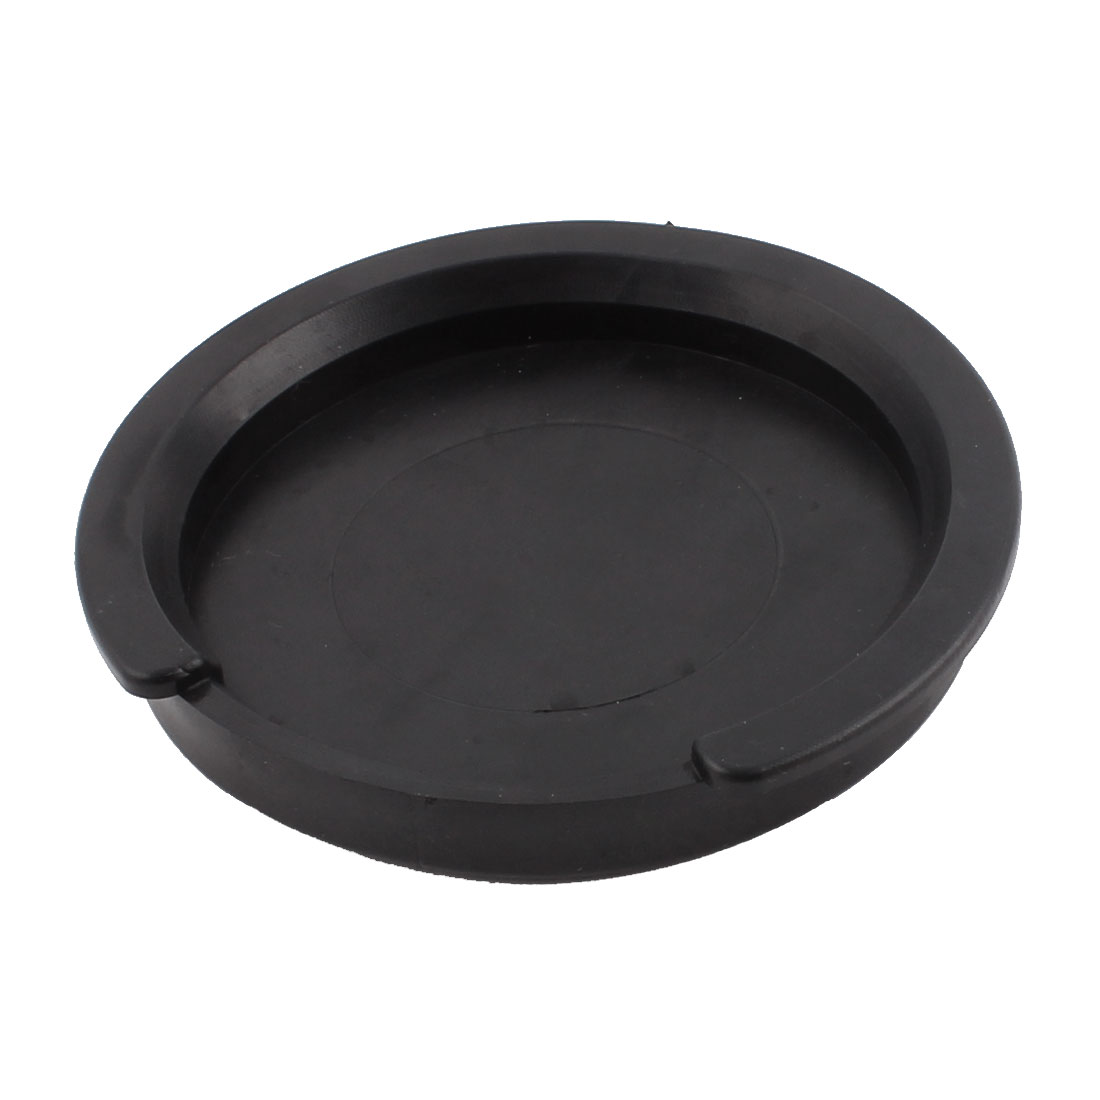 Instrument Acoustic Guitar Sound Hole Rubber Round Cover Block Protector Black